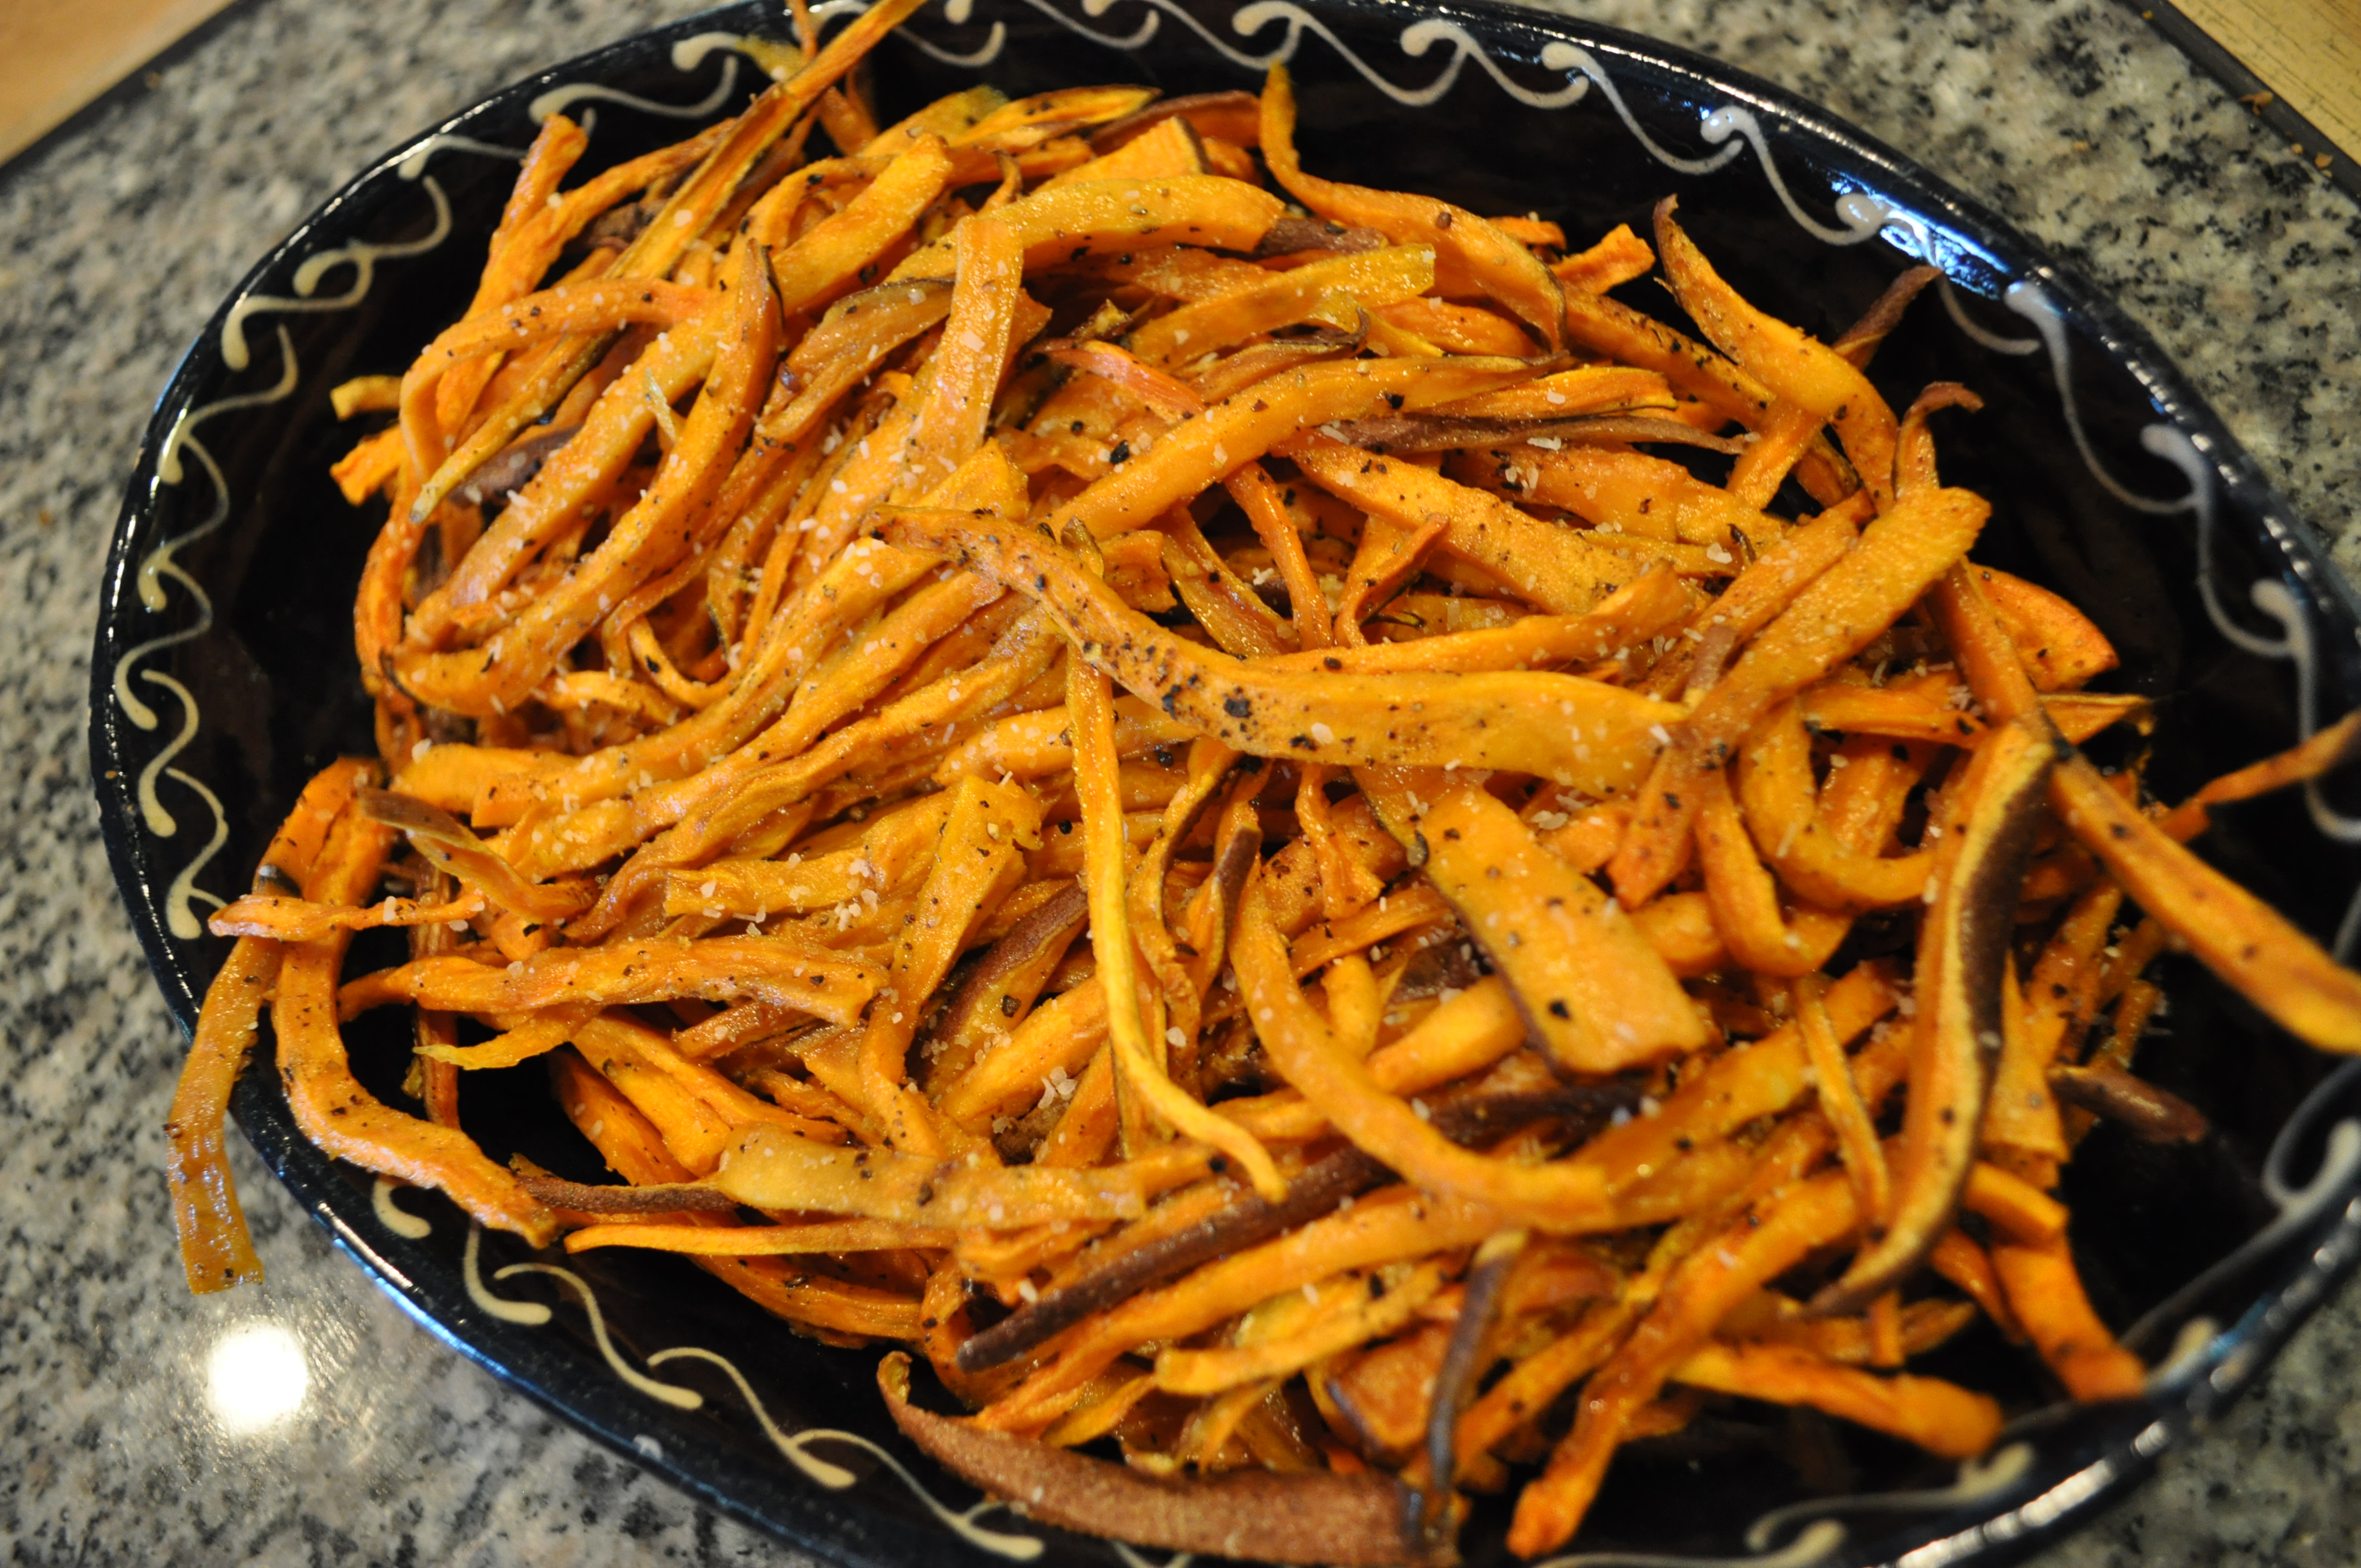 Independence Day baked sweet potato fries